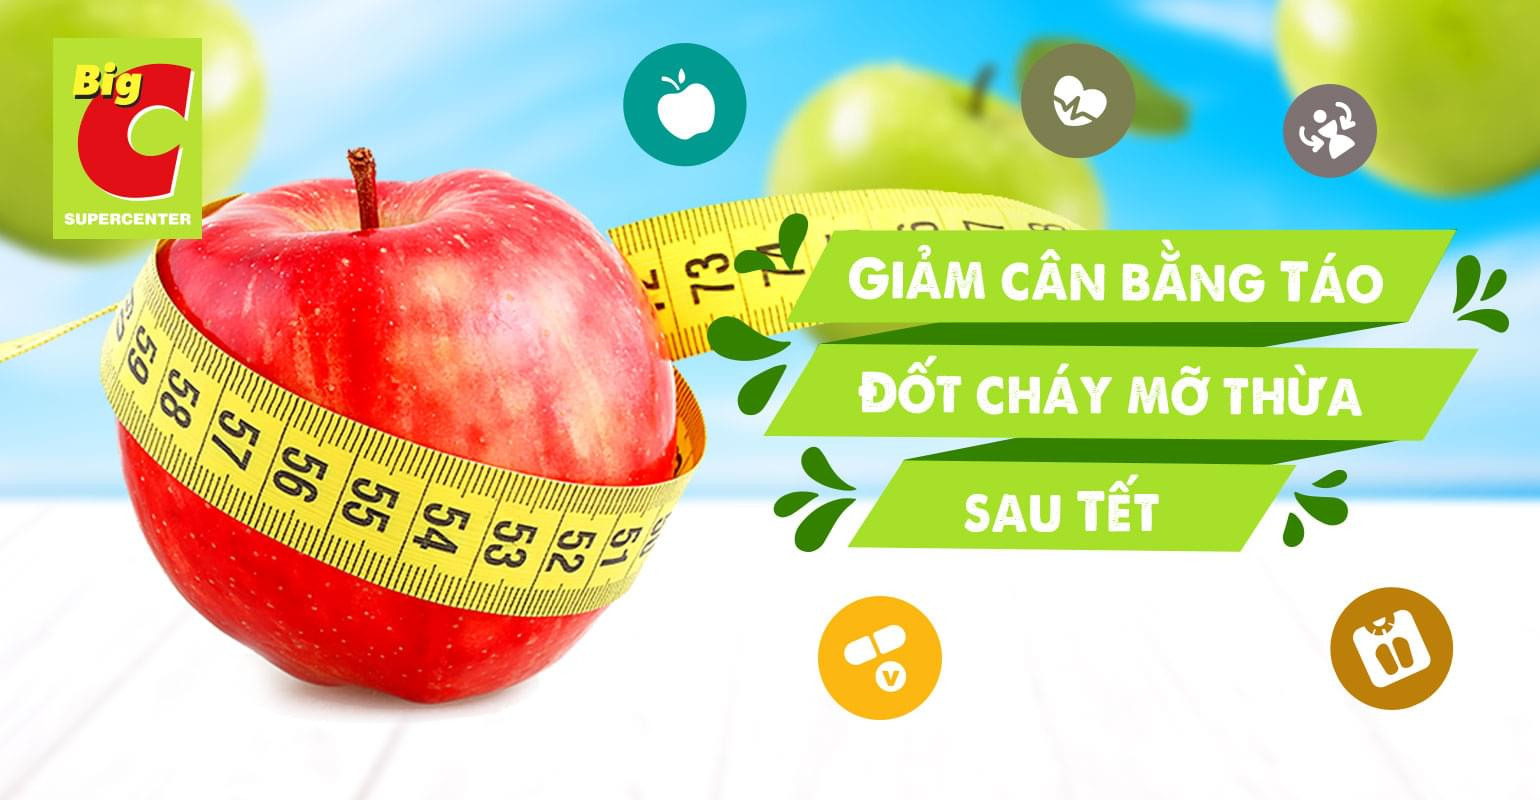 Lose weight after Tet: an apple a day cuts the belly fat away